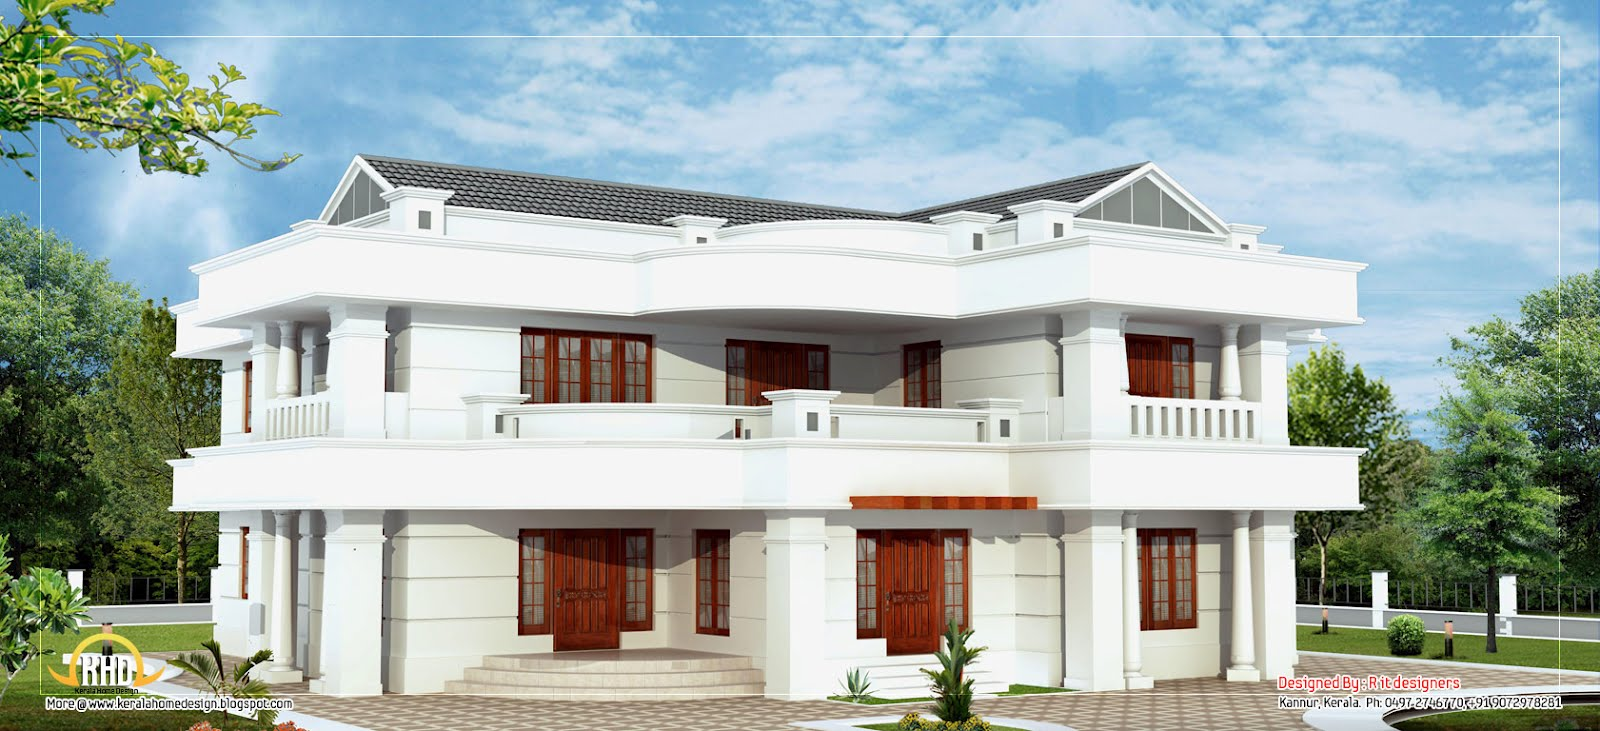 Beautiful 2 Story House Elevation 3665 Sq Ft Kerala